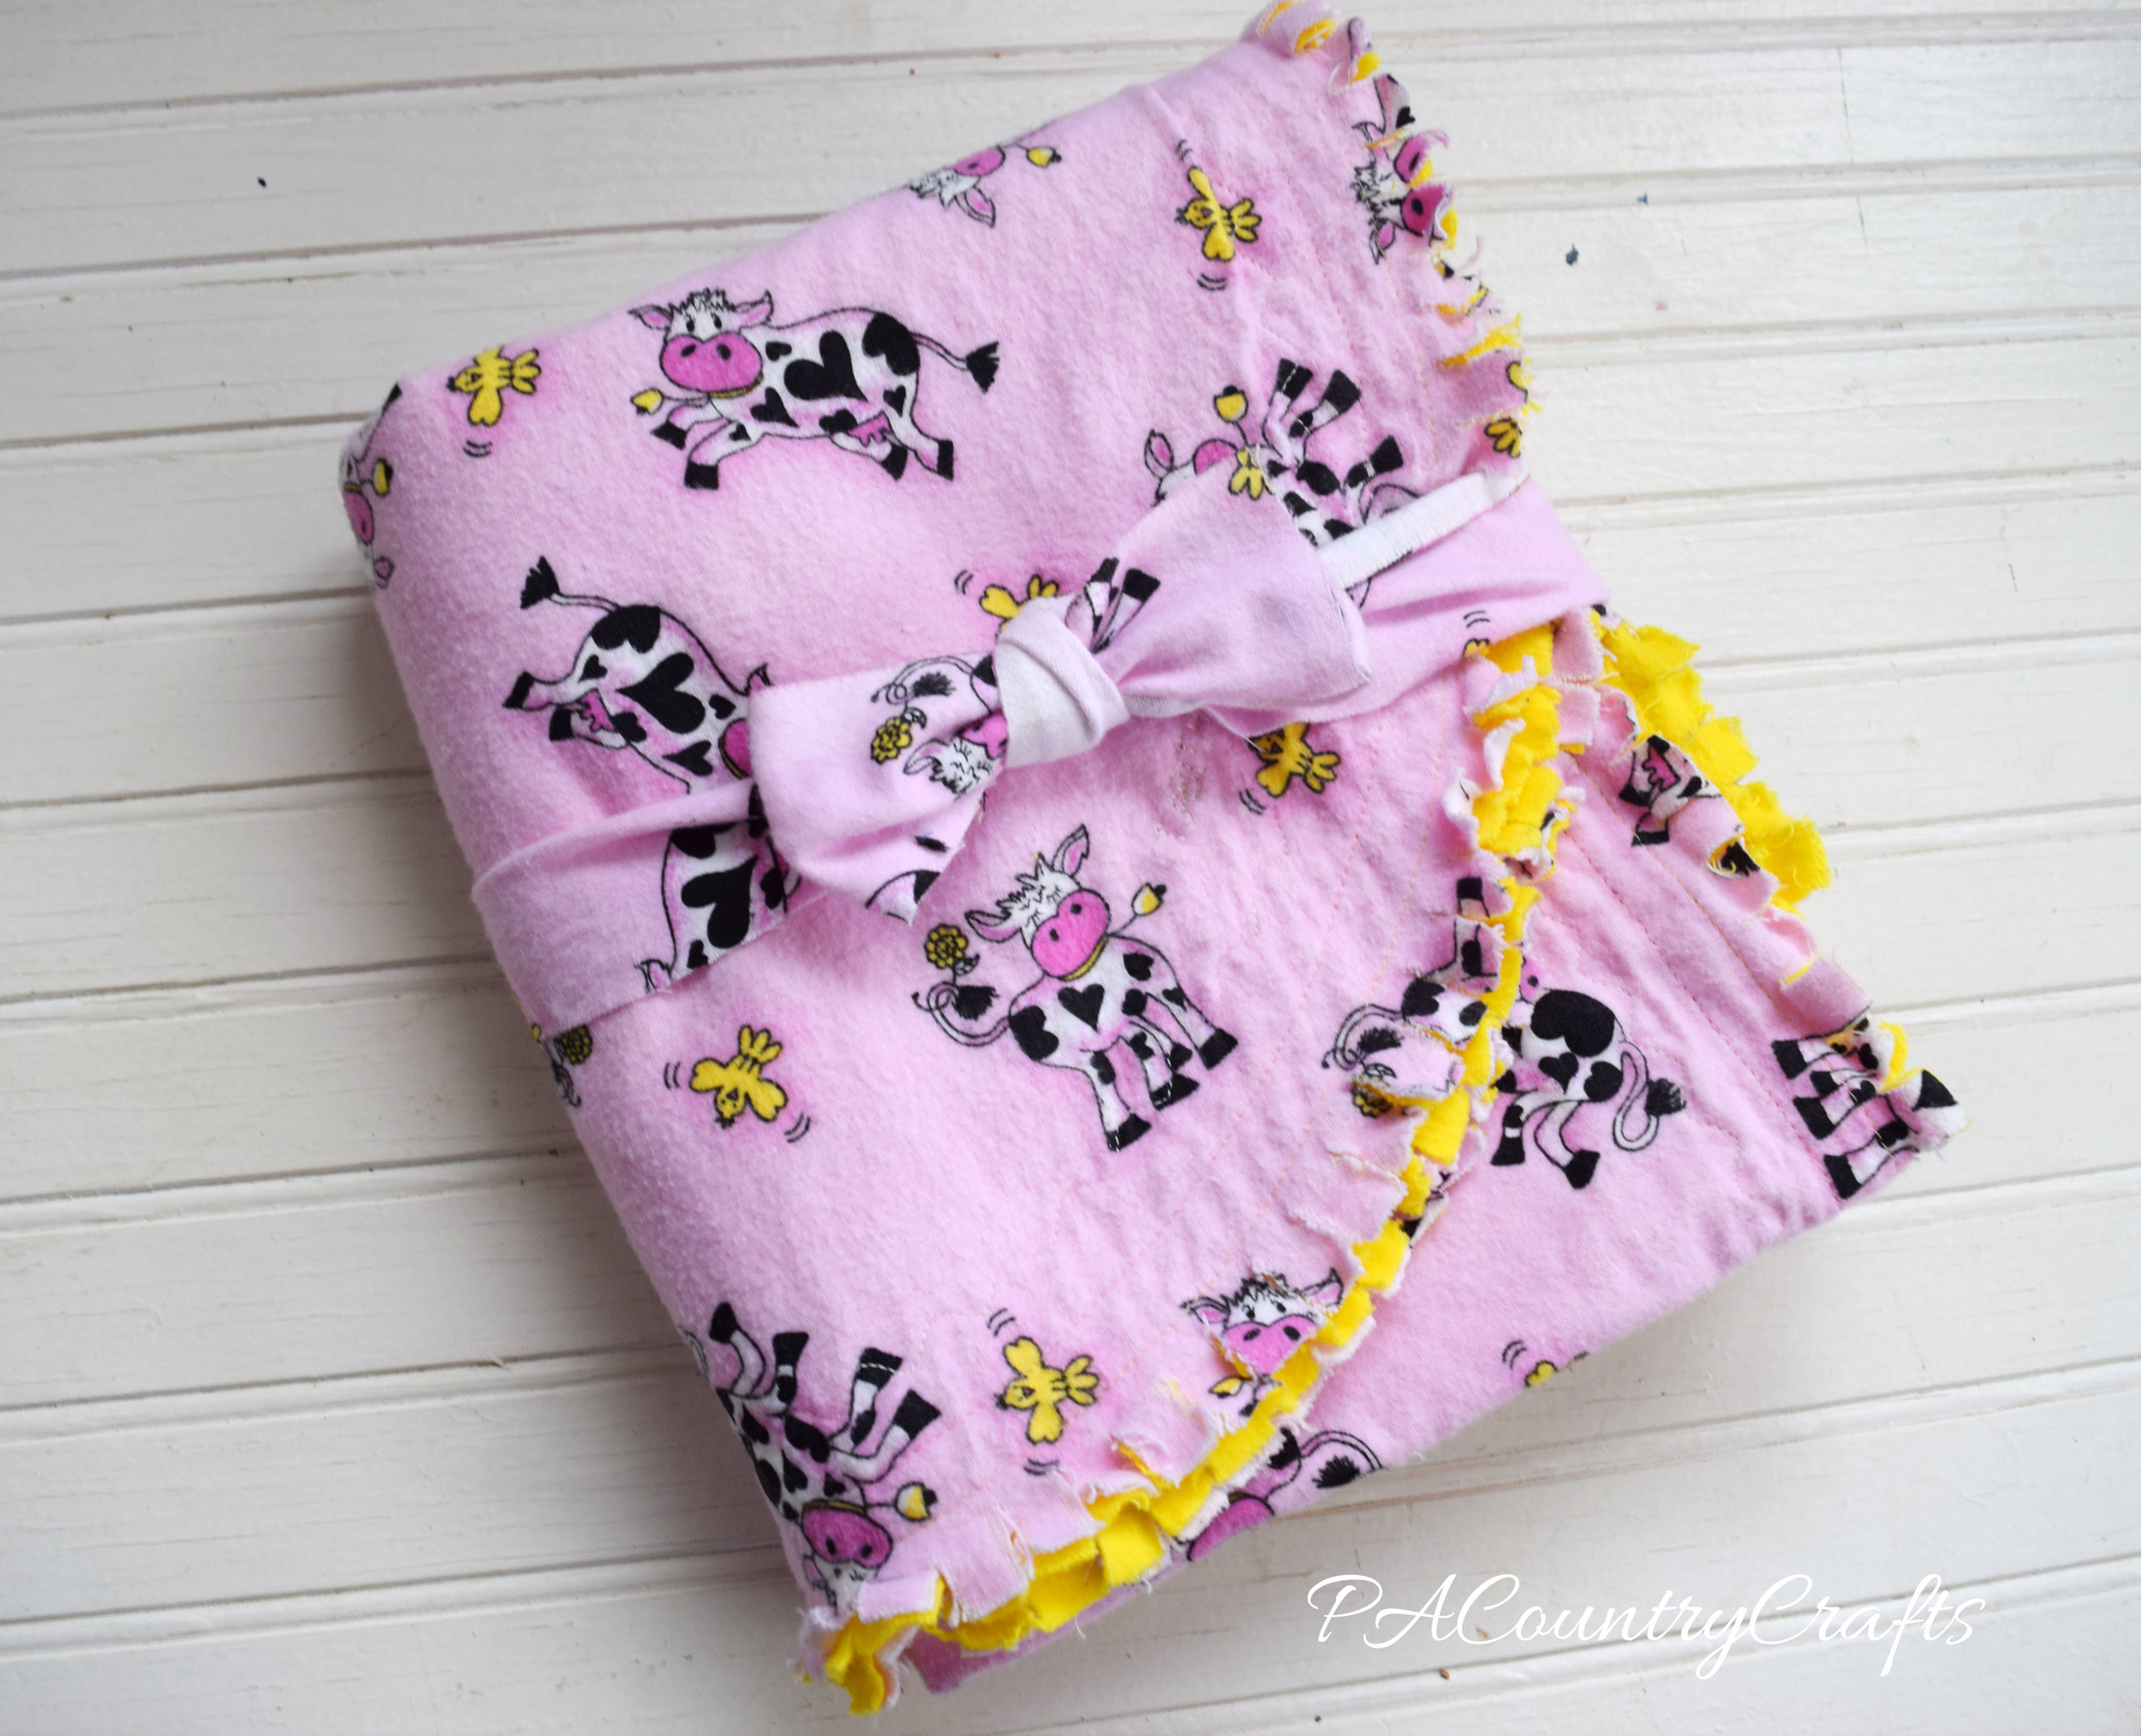 flannel-rag-edge-baby-blanket-with-cows